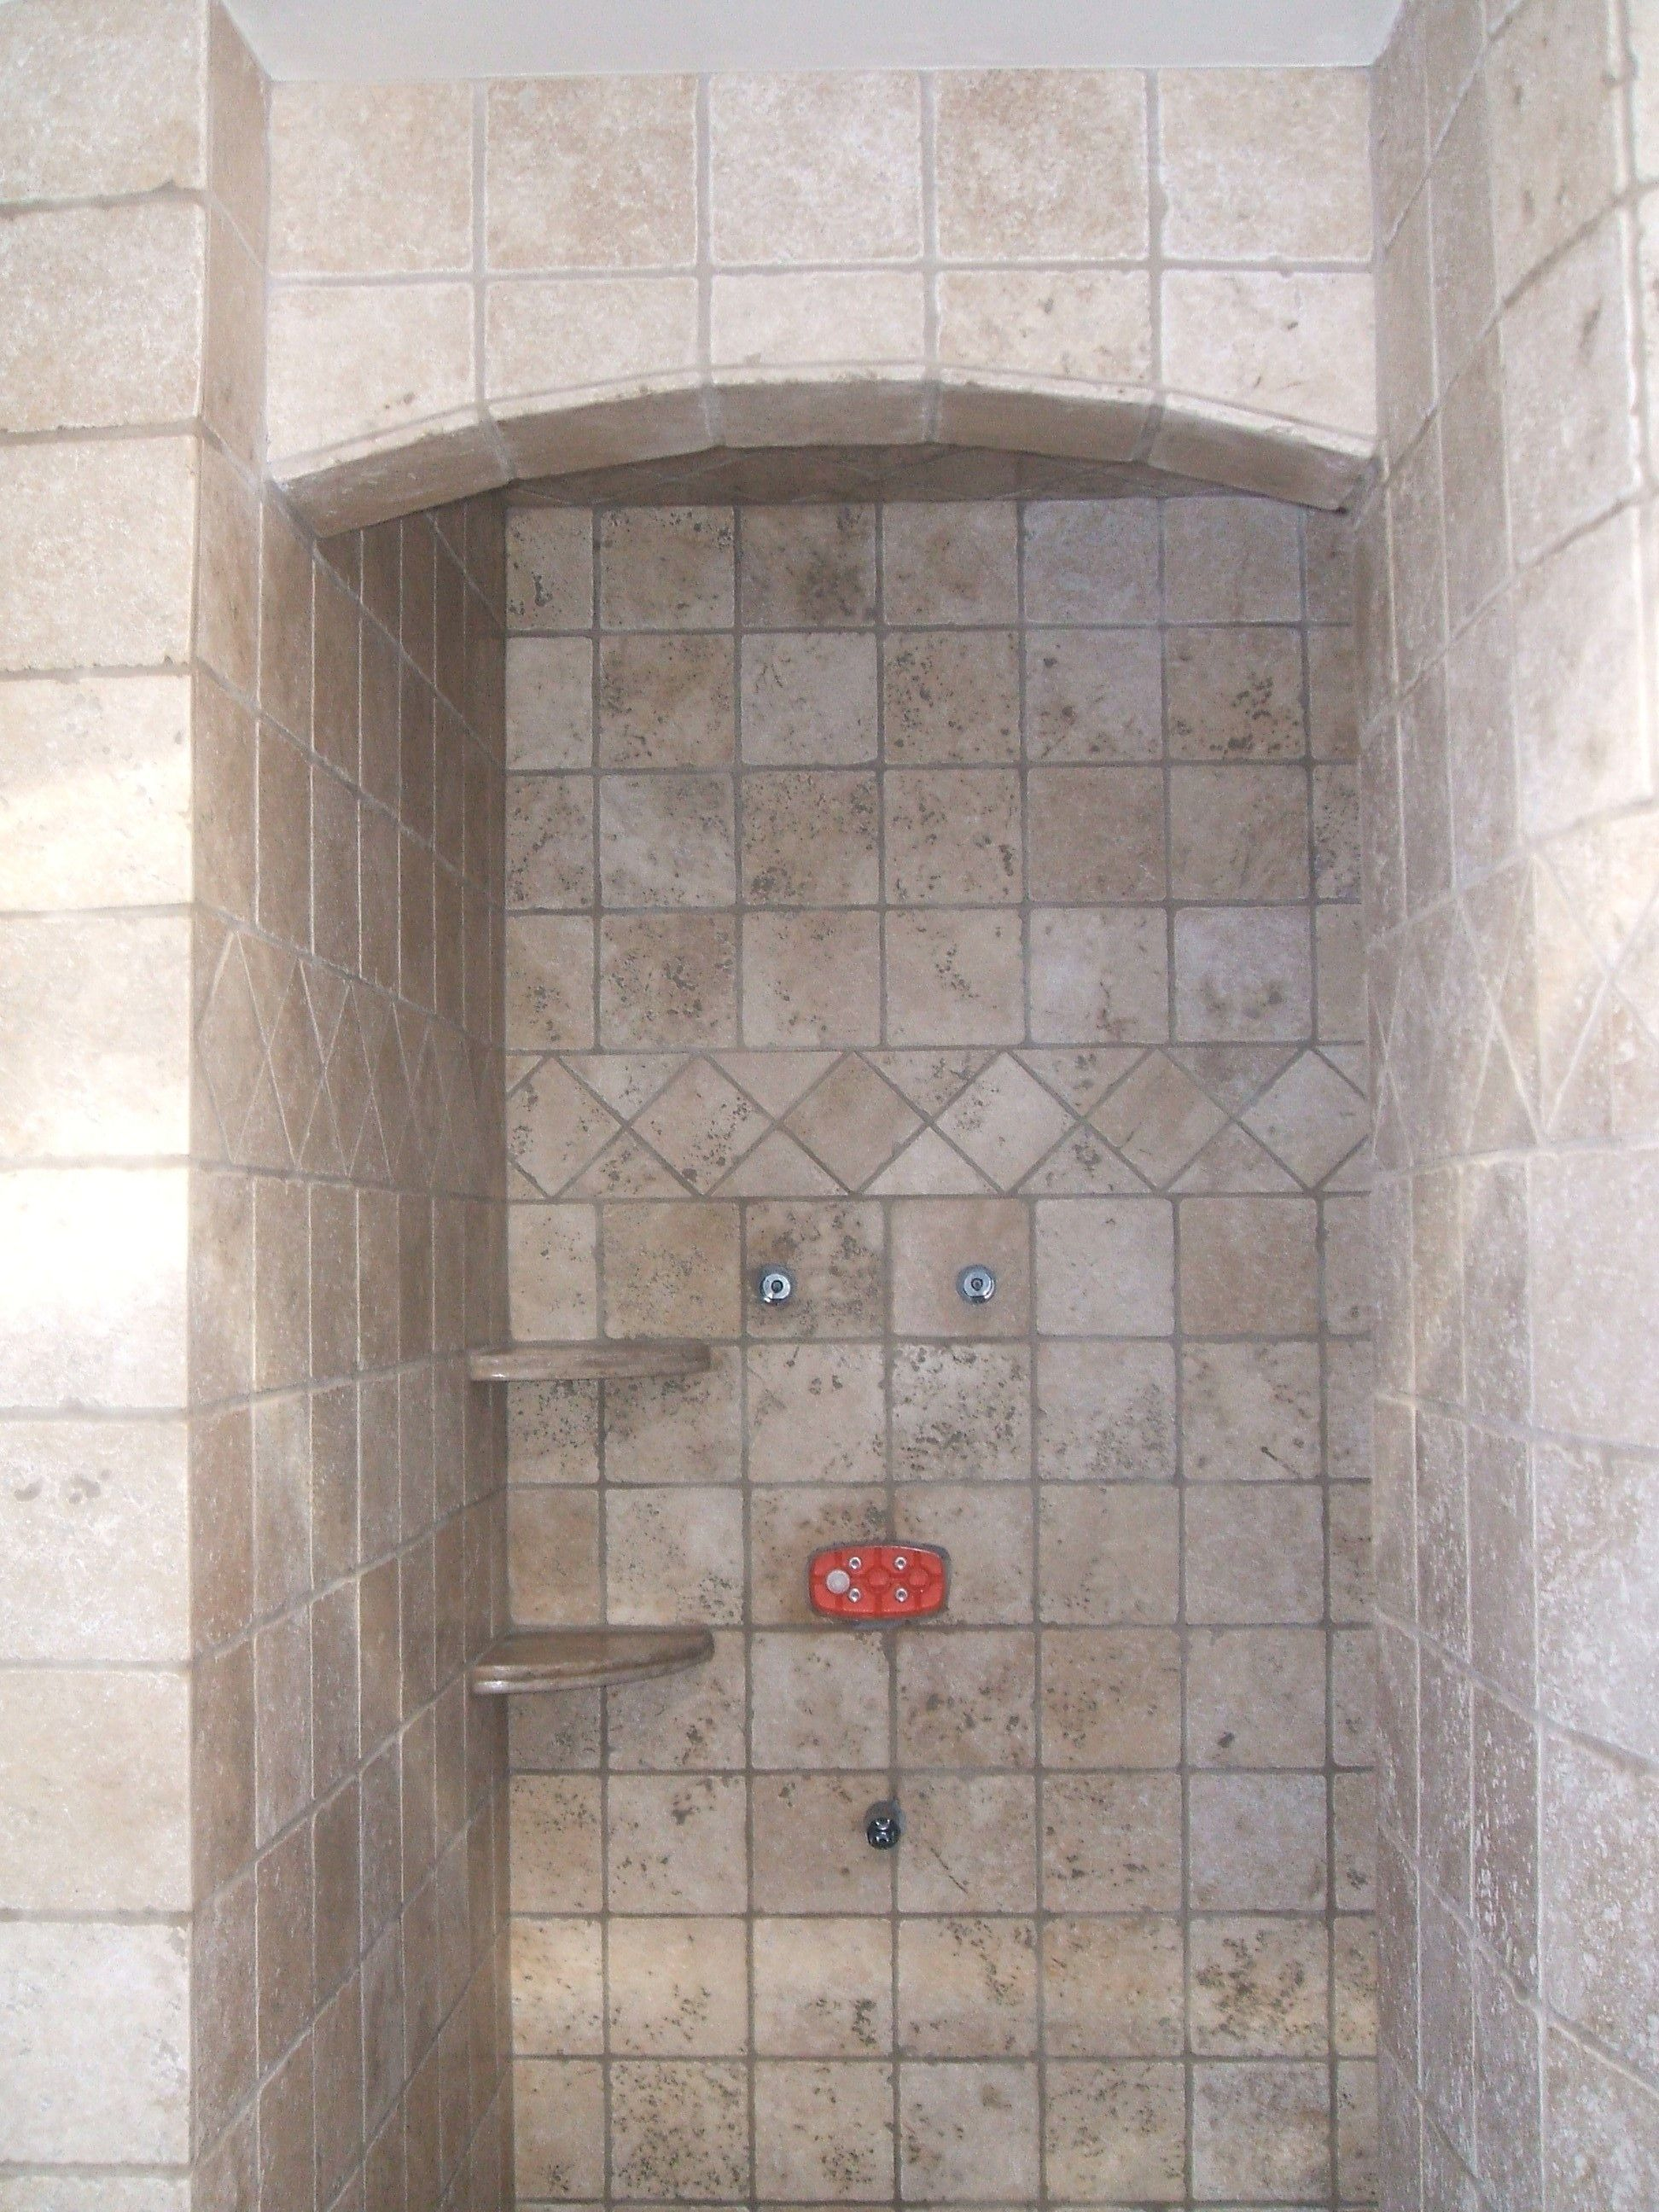 Terrific ceramic tile shower ideas small bathrooms with for Small tiled showers